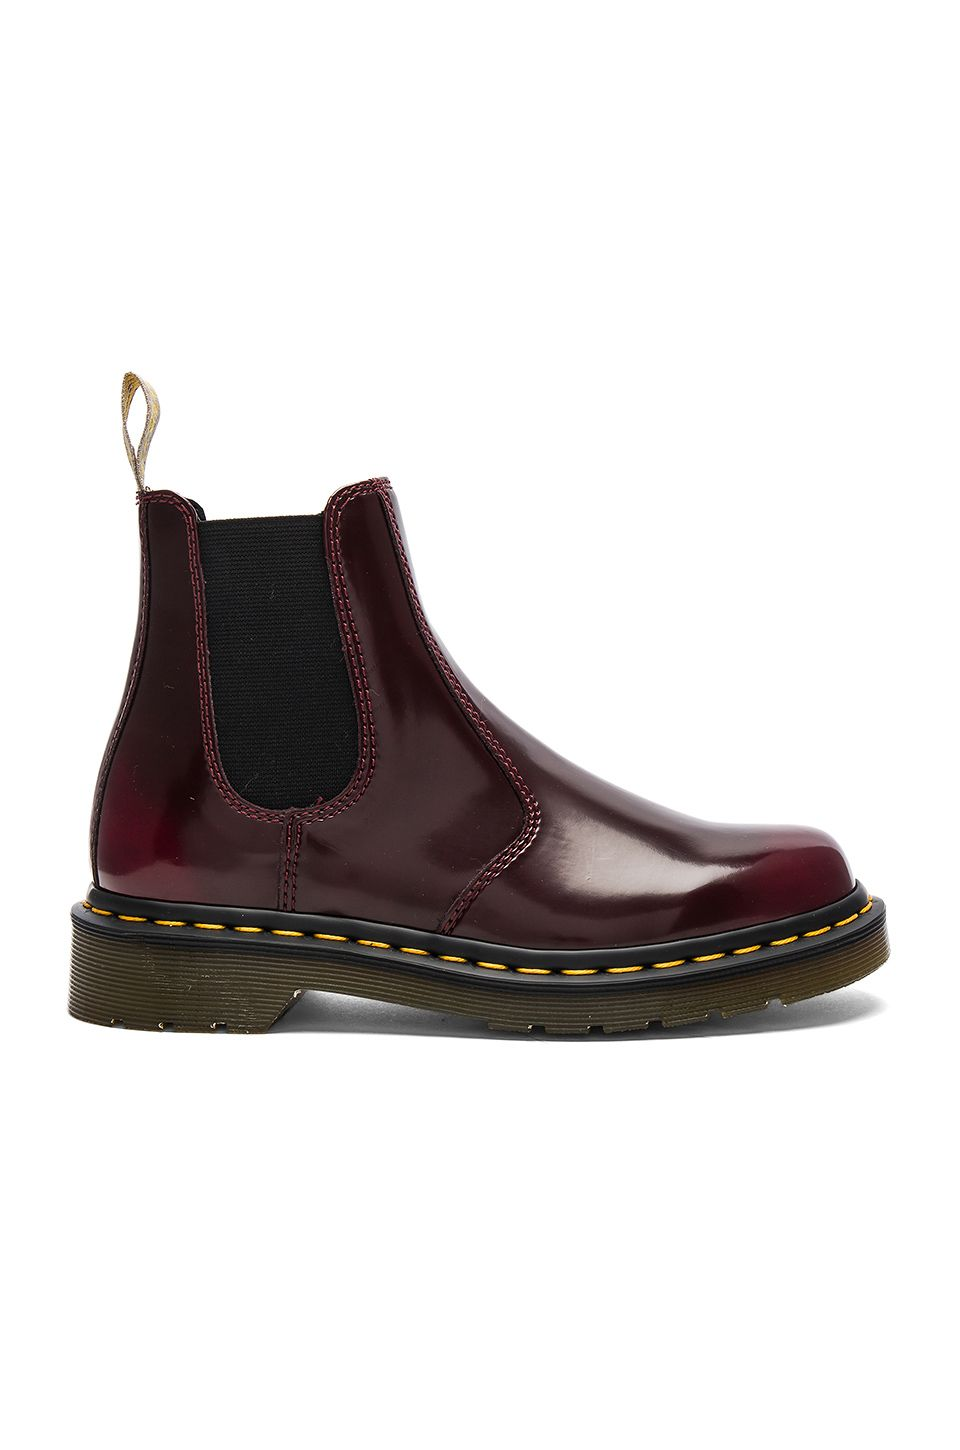 dr martens chelsea boot in cherry red revolve shoes. Black Bedroom Furniture Sets. Home Design Ideas